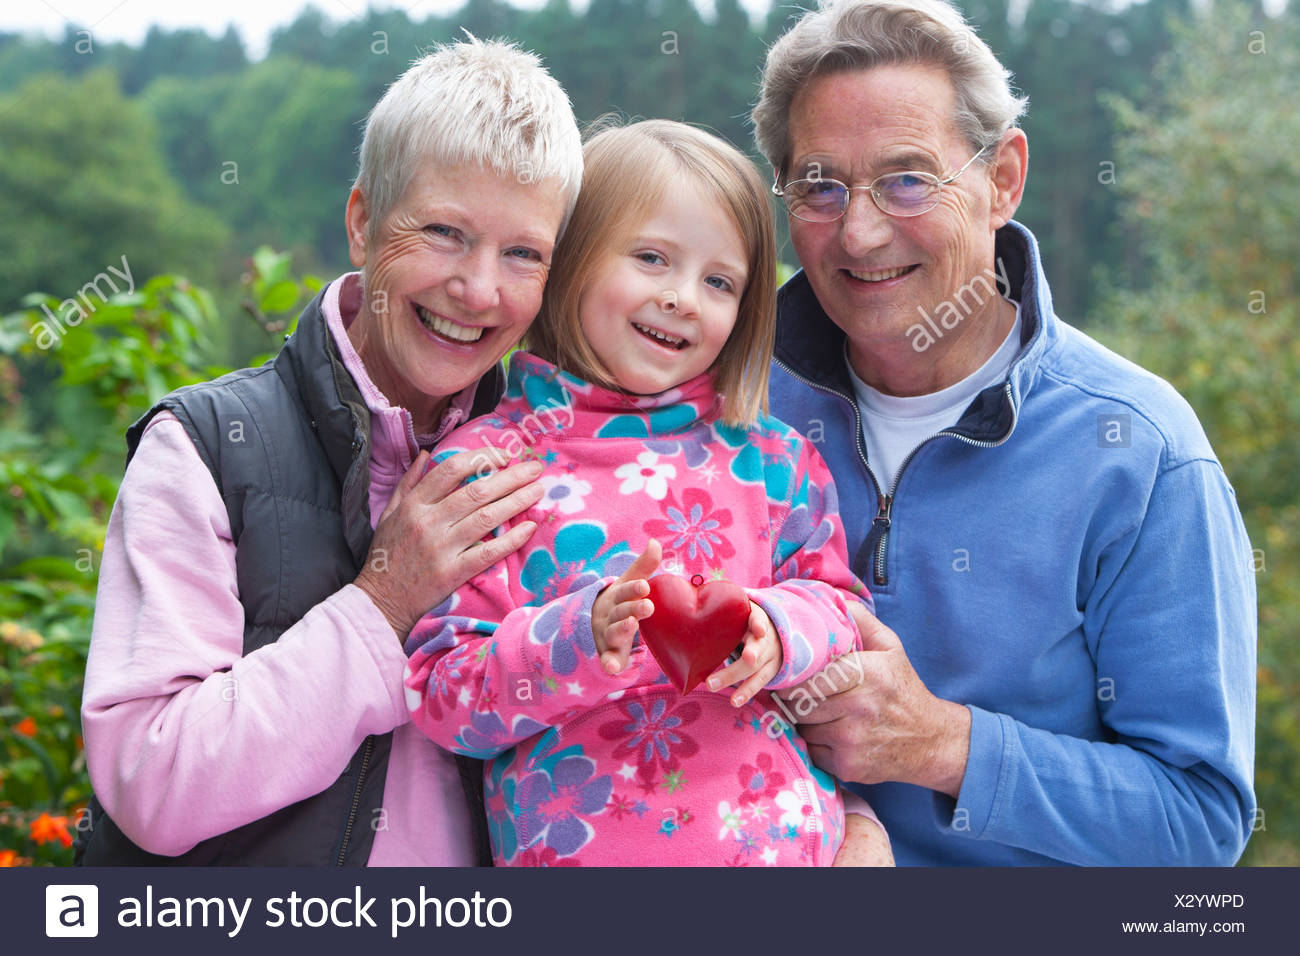 Portrait of smiling grandparents and granddaughter with heart-shape ornament in garden - Stock Image